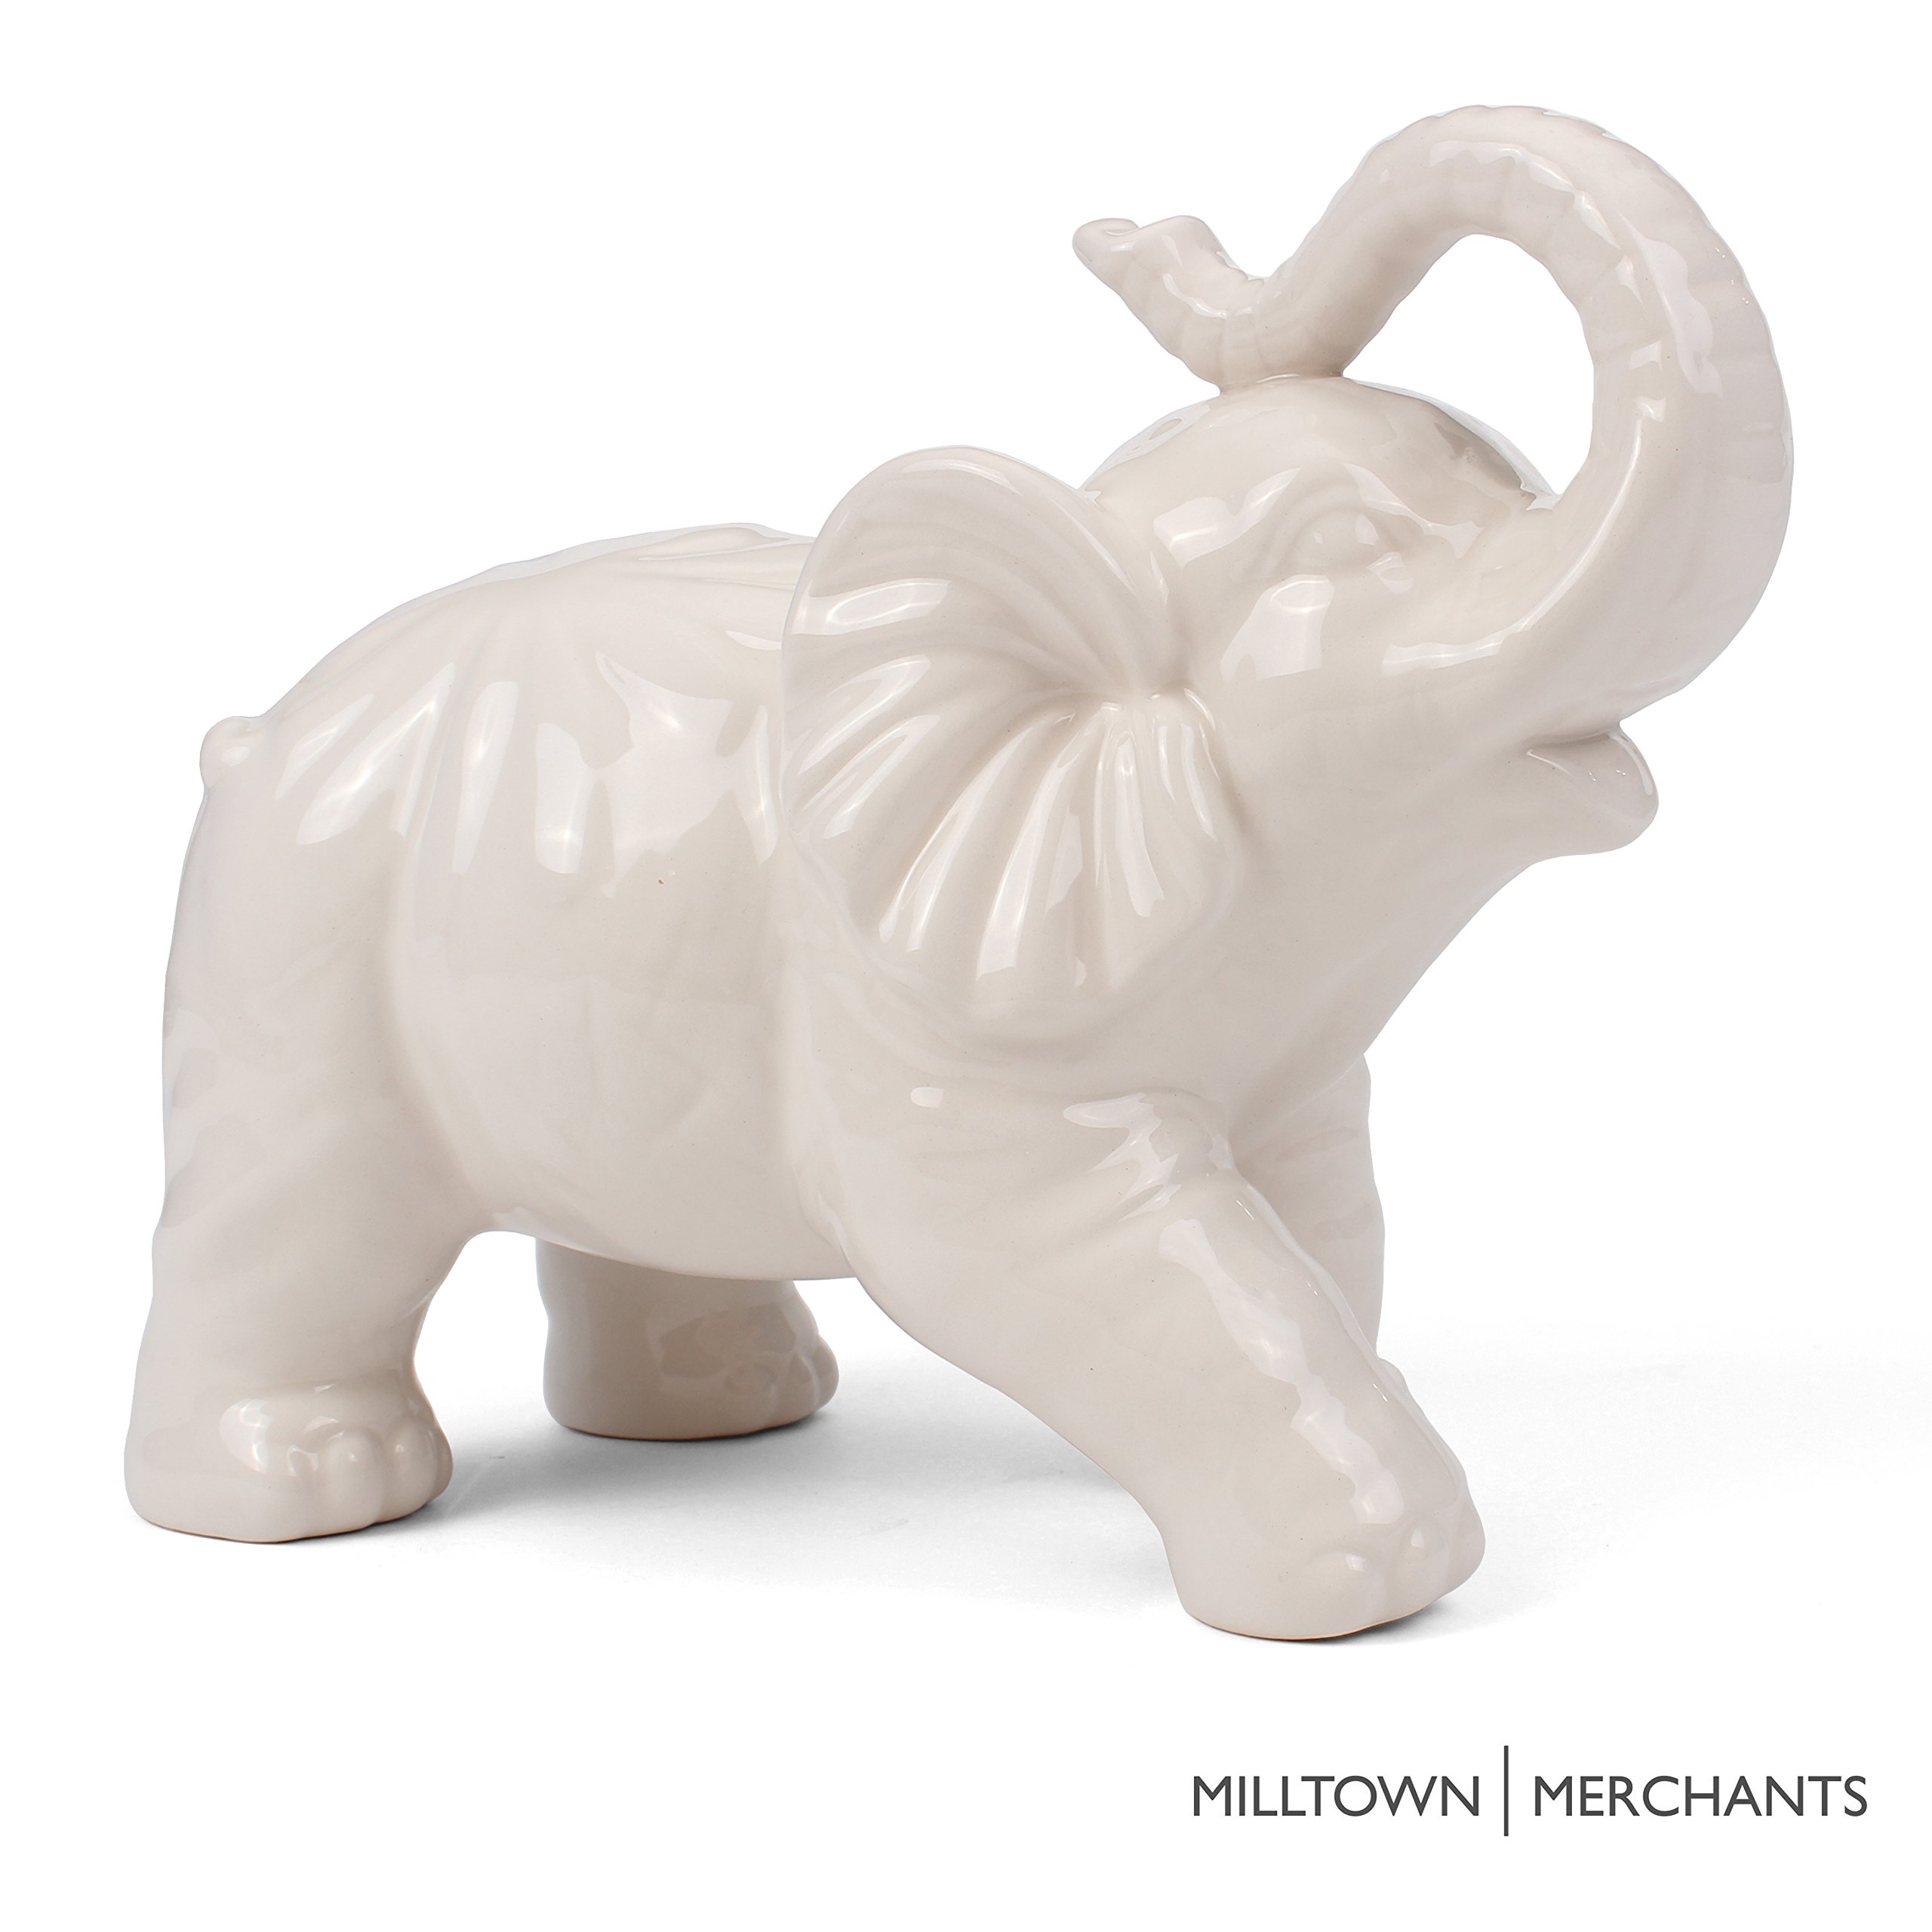 Get Quotations Milltown Merchants Trade Elephant Figurine Ceramic Decor White